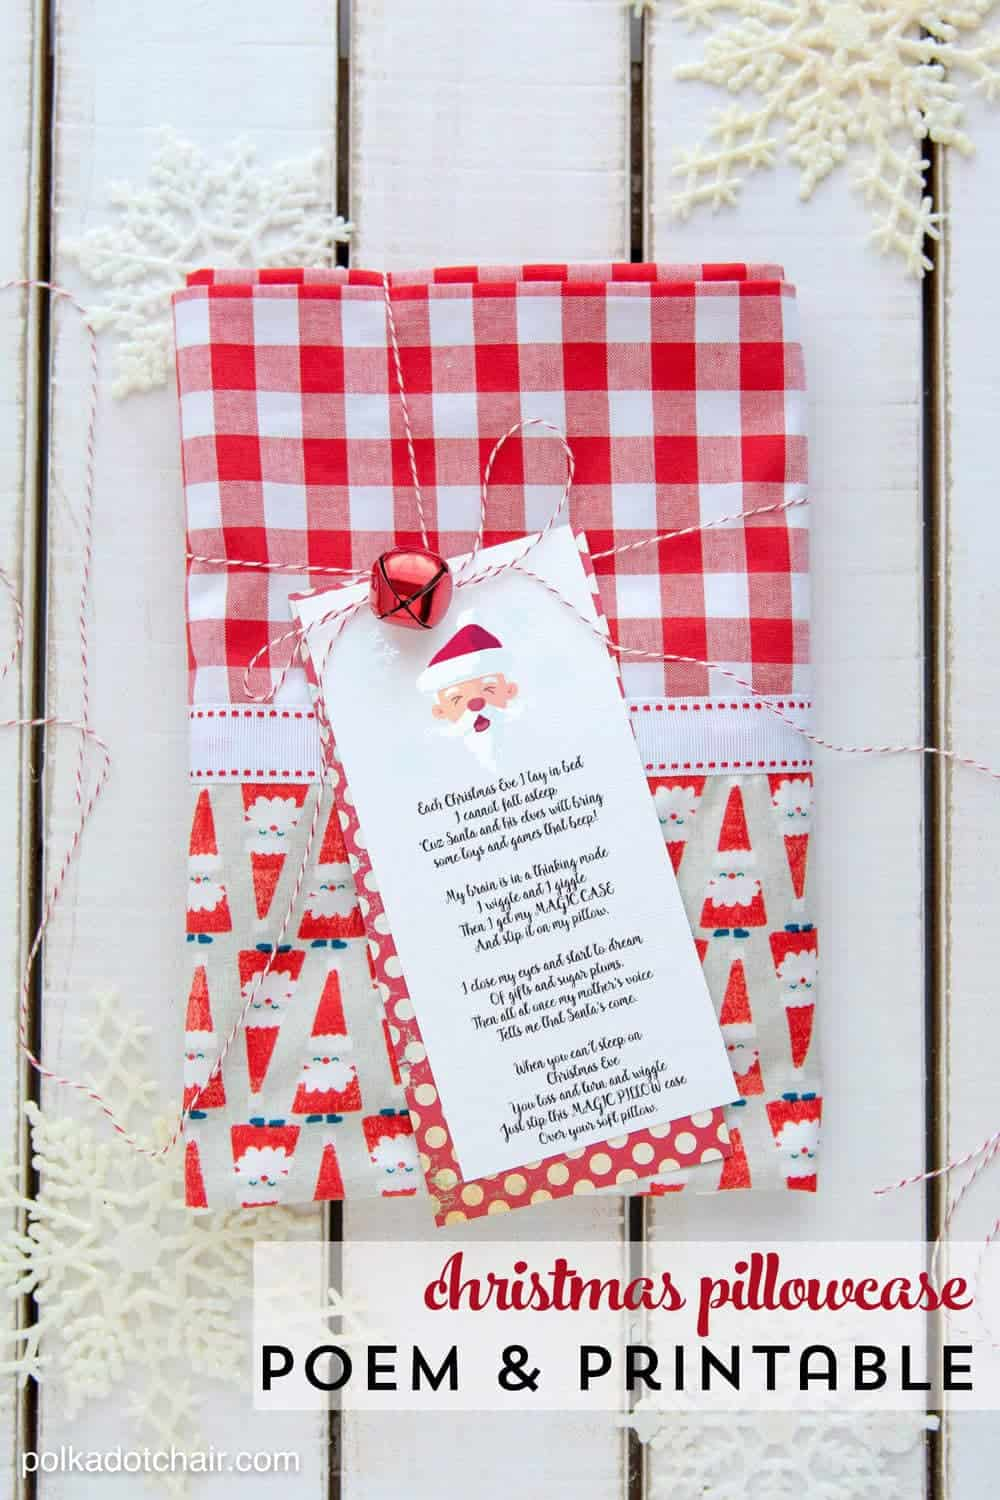 Christmas Pillowcase Poem + FREE PRINTABLE - I Heart Nap Time